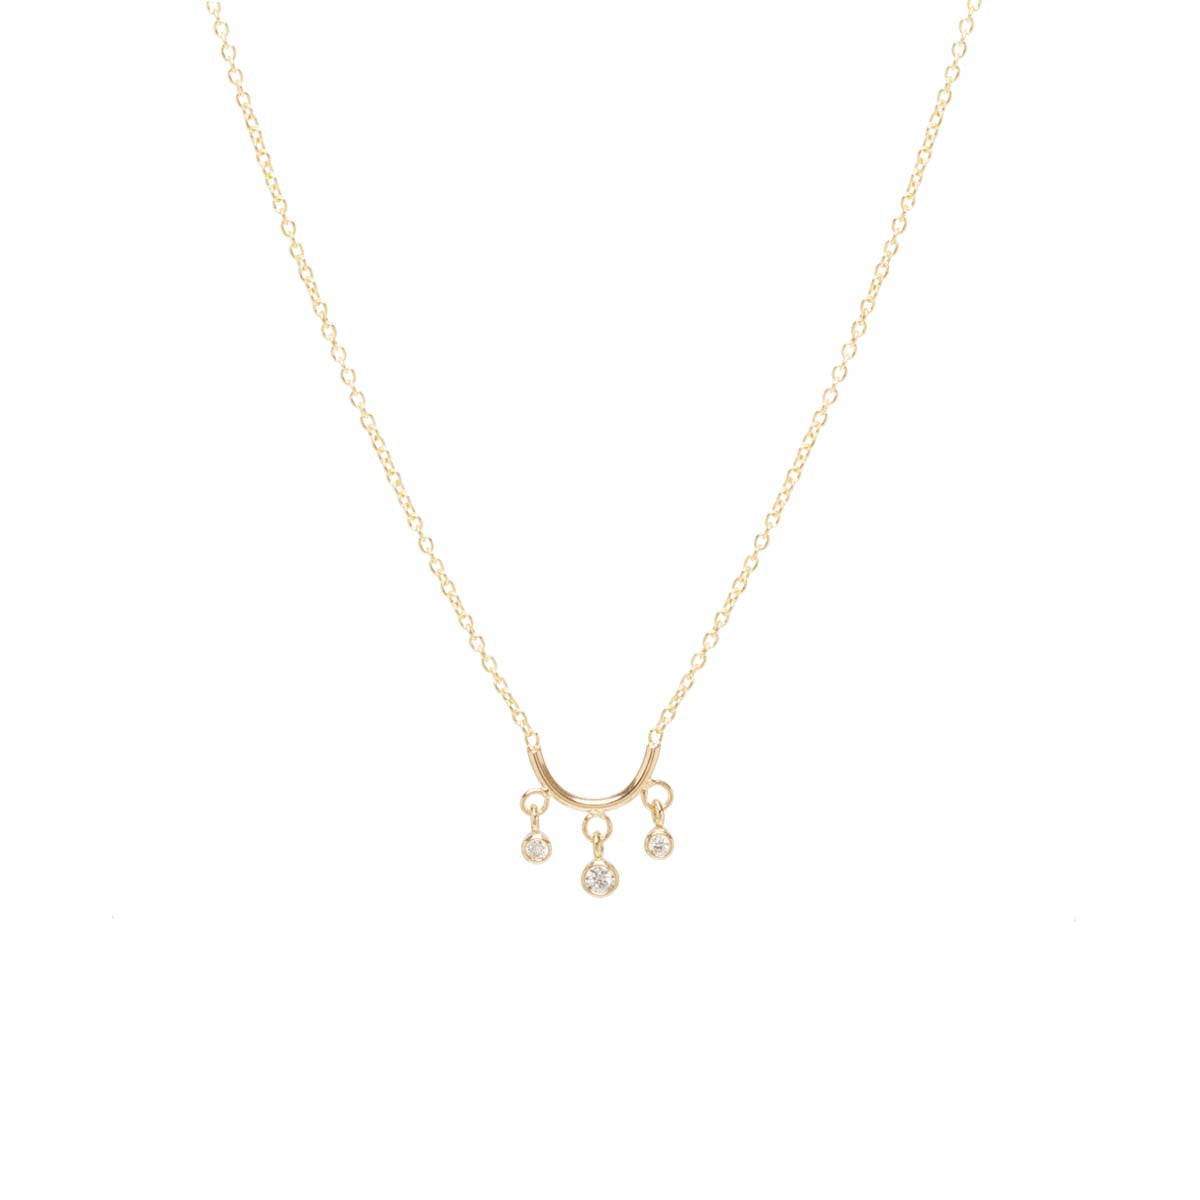 Zoë Chicco 14kt Yellow Gold Tiny Curved Bar Necklace With Dangling White Diamonds